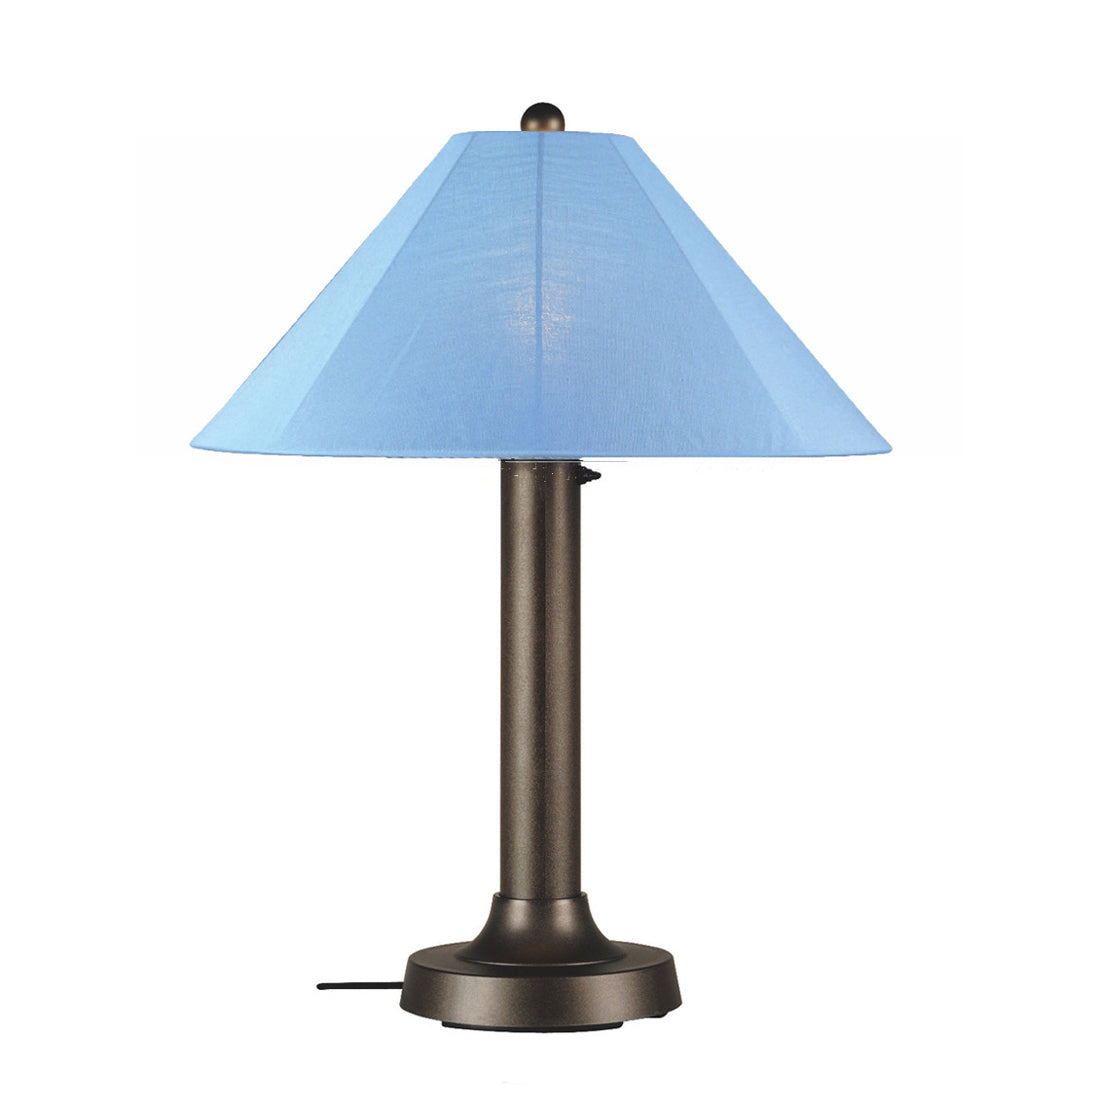 "Catalina Table Lamp 39647 with 3"" bronze body and sky blue Sunbrella shade fabric"